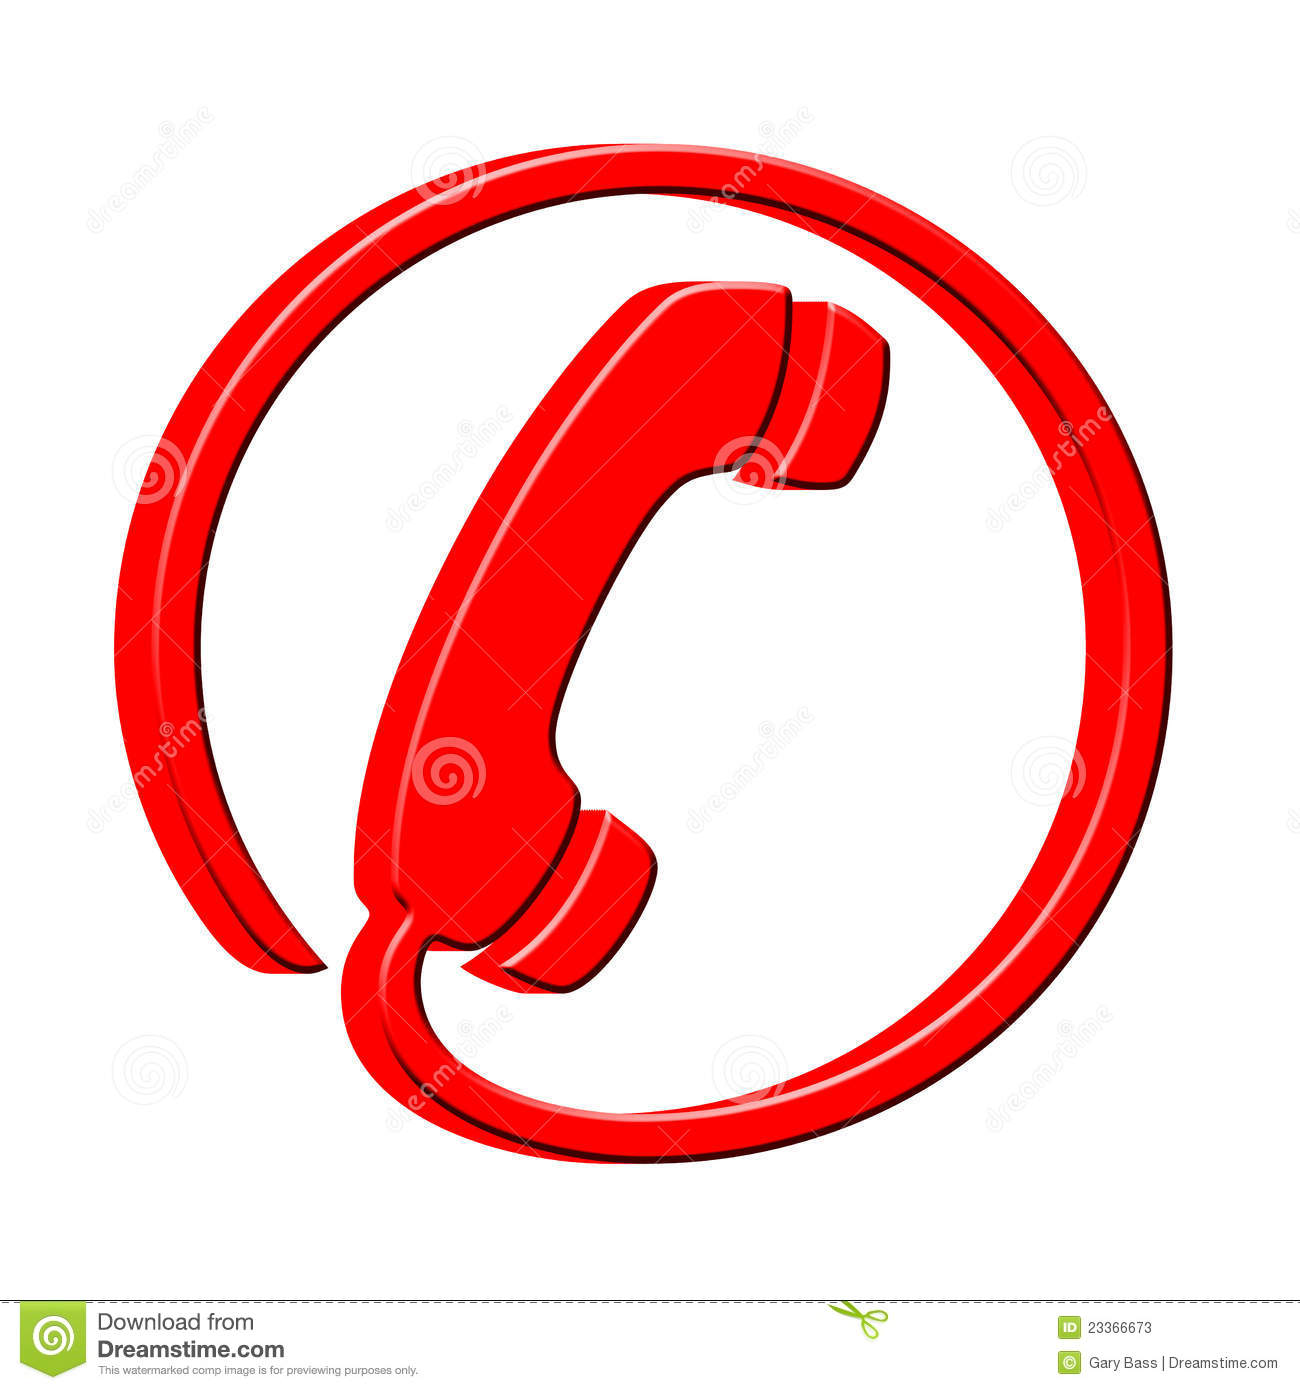 Phone Symbol For Email Signature Gallery - meaning of this symbol